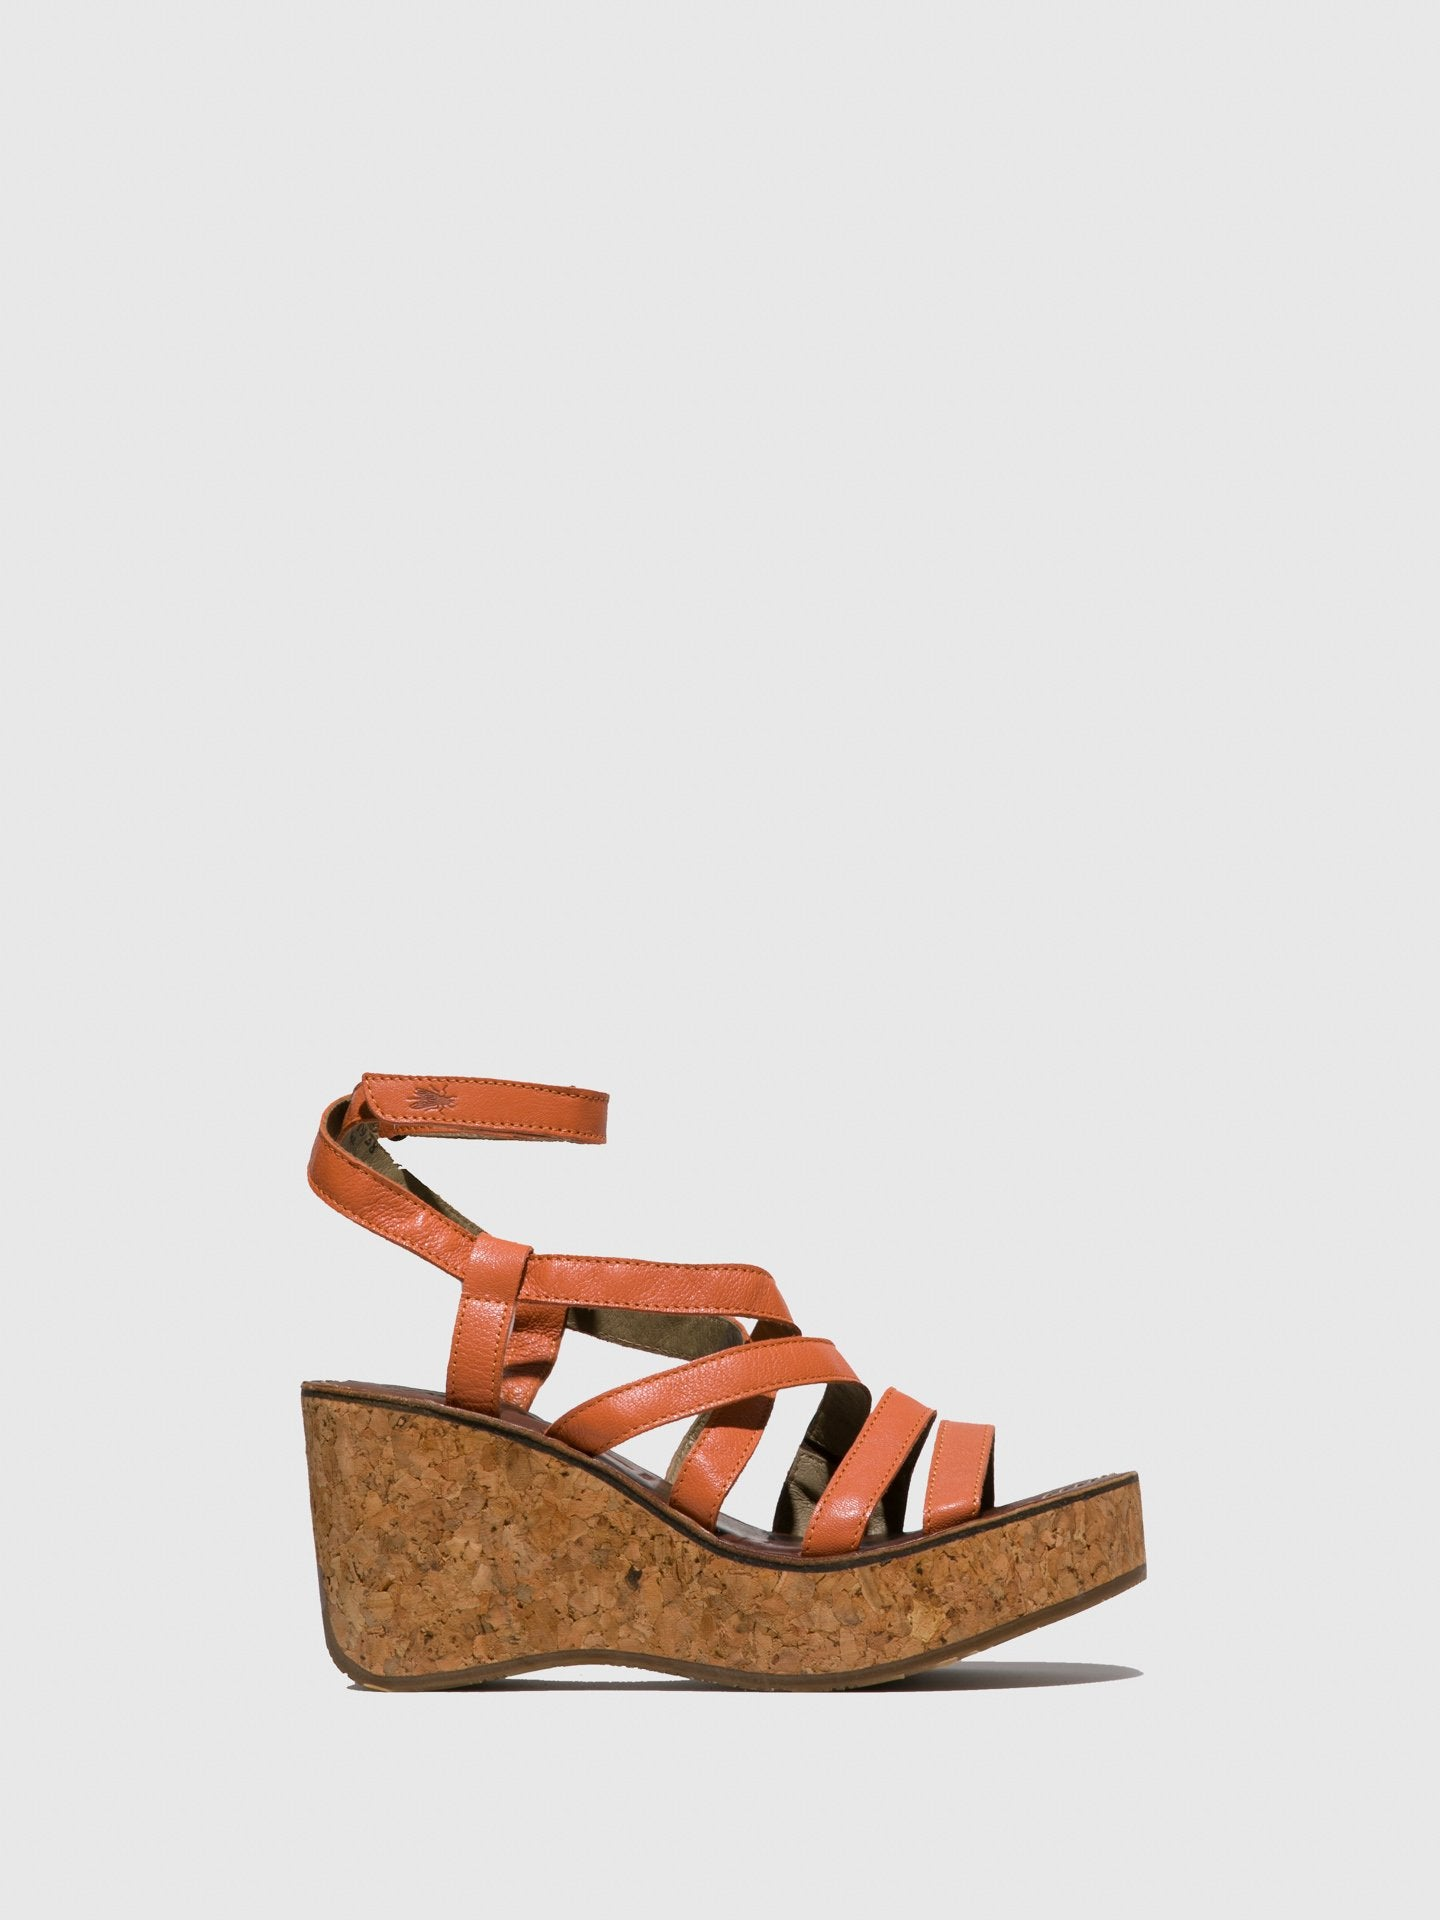 Fly London Sling-Back Sandals BIME169FLY OFFWHITE/CONCRETE